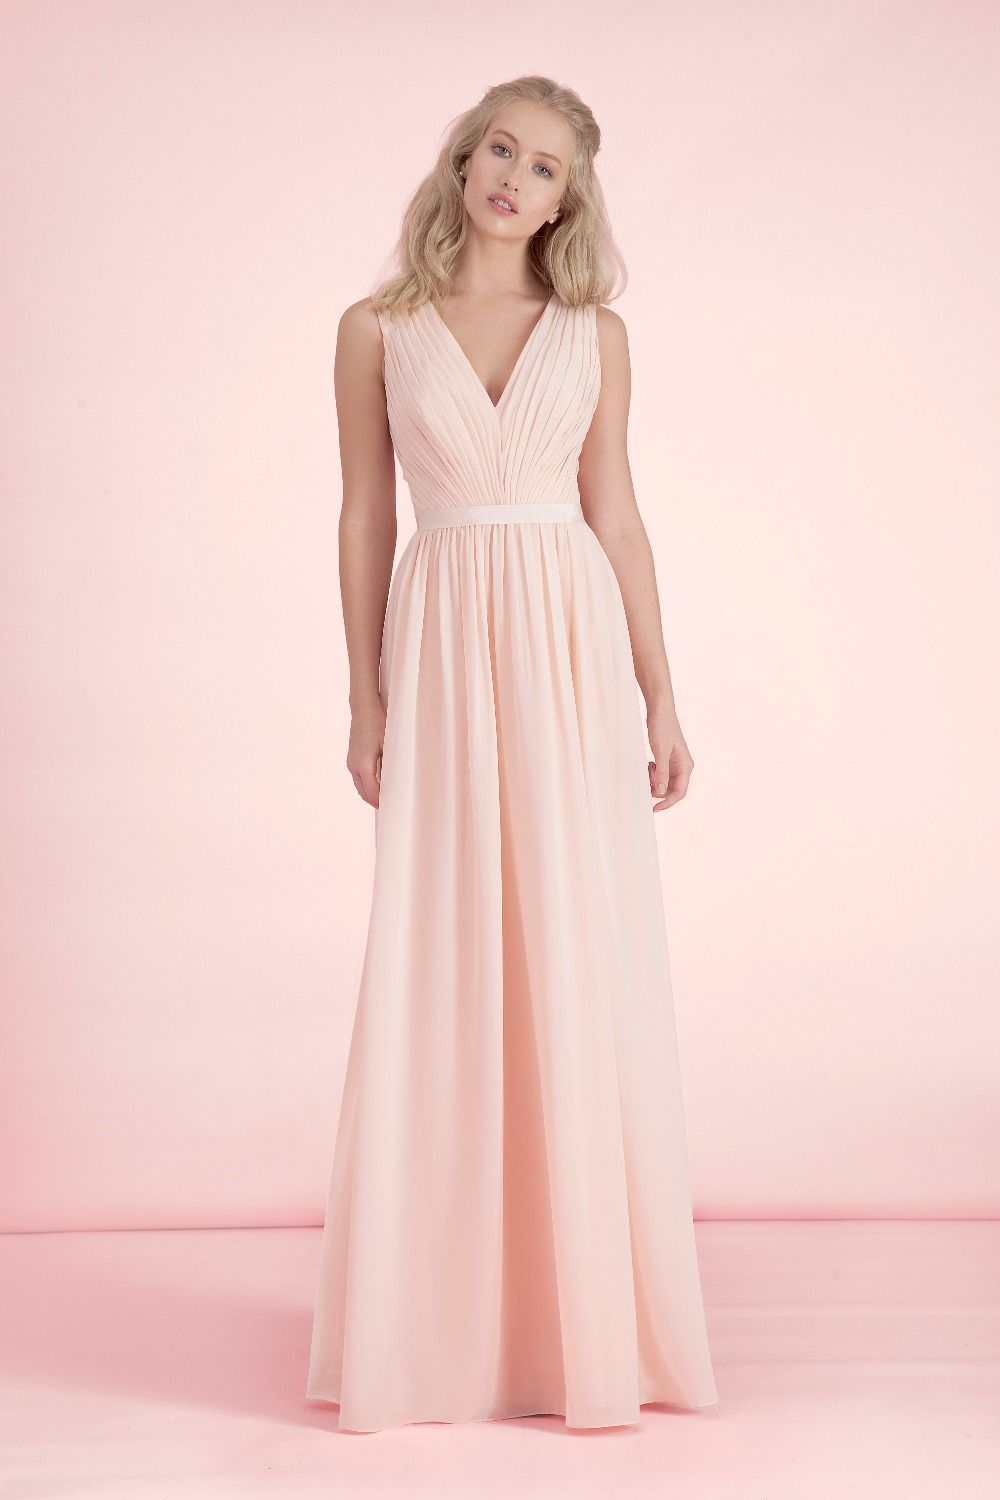 Moda elegante , Simple Light Pink dama de honor vestidos V cuello ...